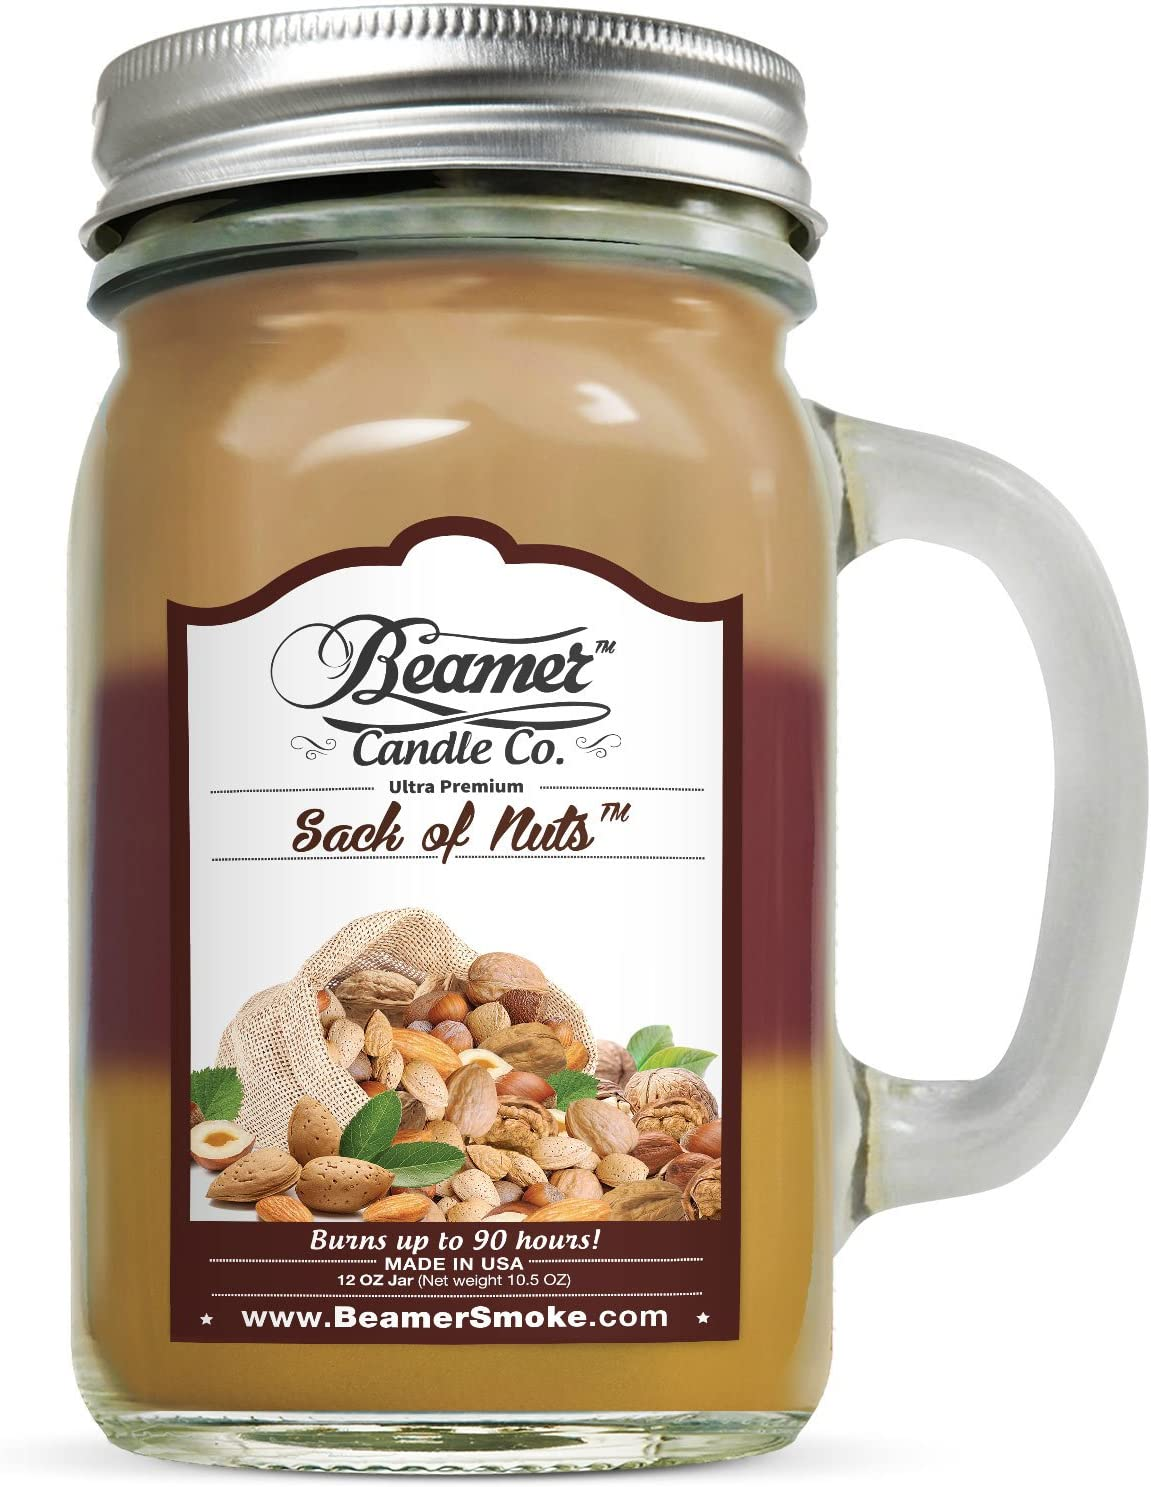 12oz Sack of Nuts Scented Beamer Candle Co 3 Different Scents USA Made Ultra Premium Jar Candle 90 Hr Burn Time